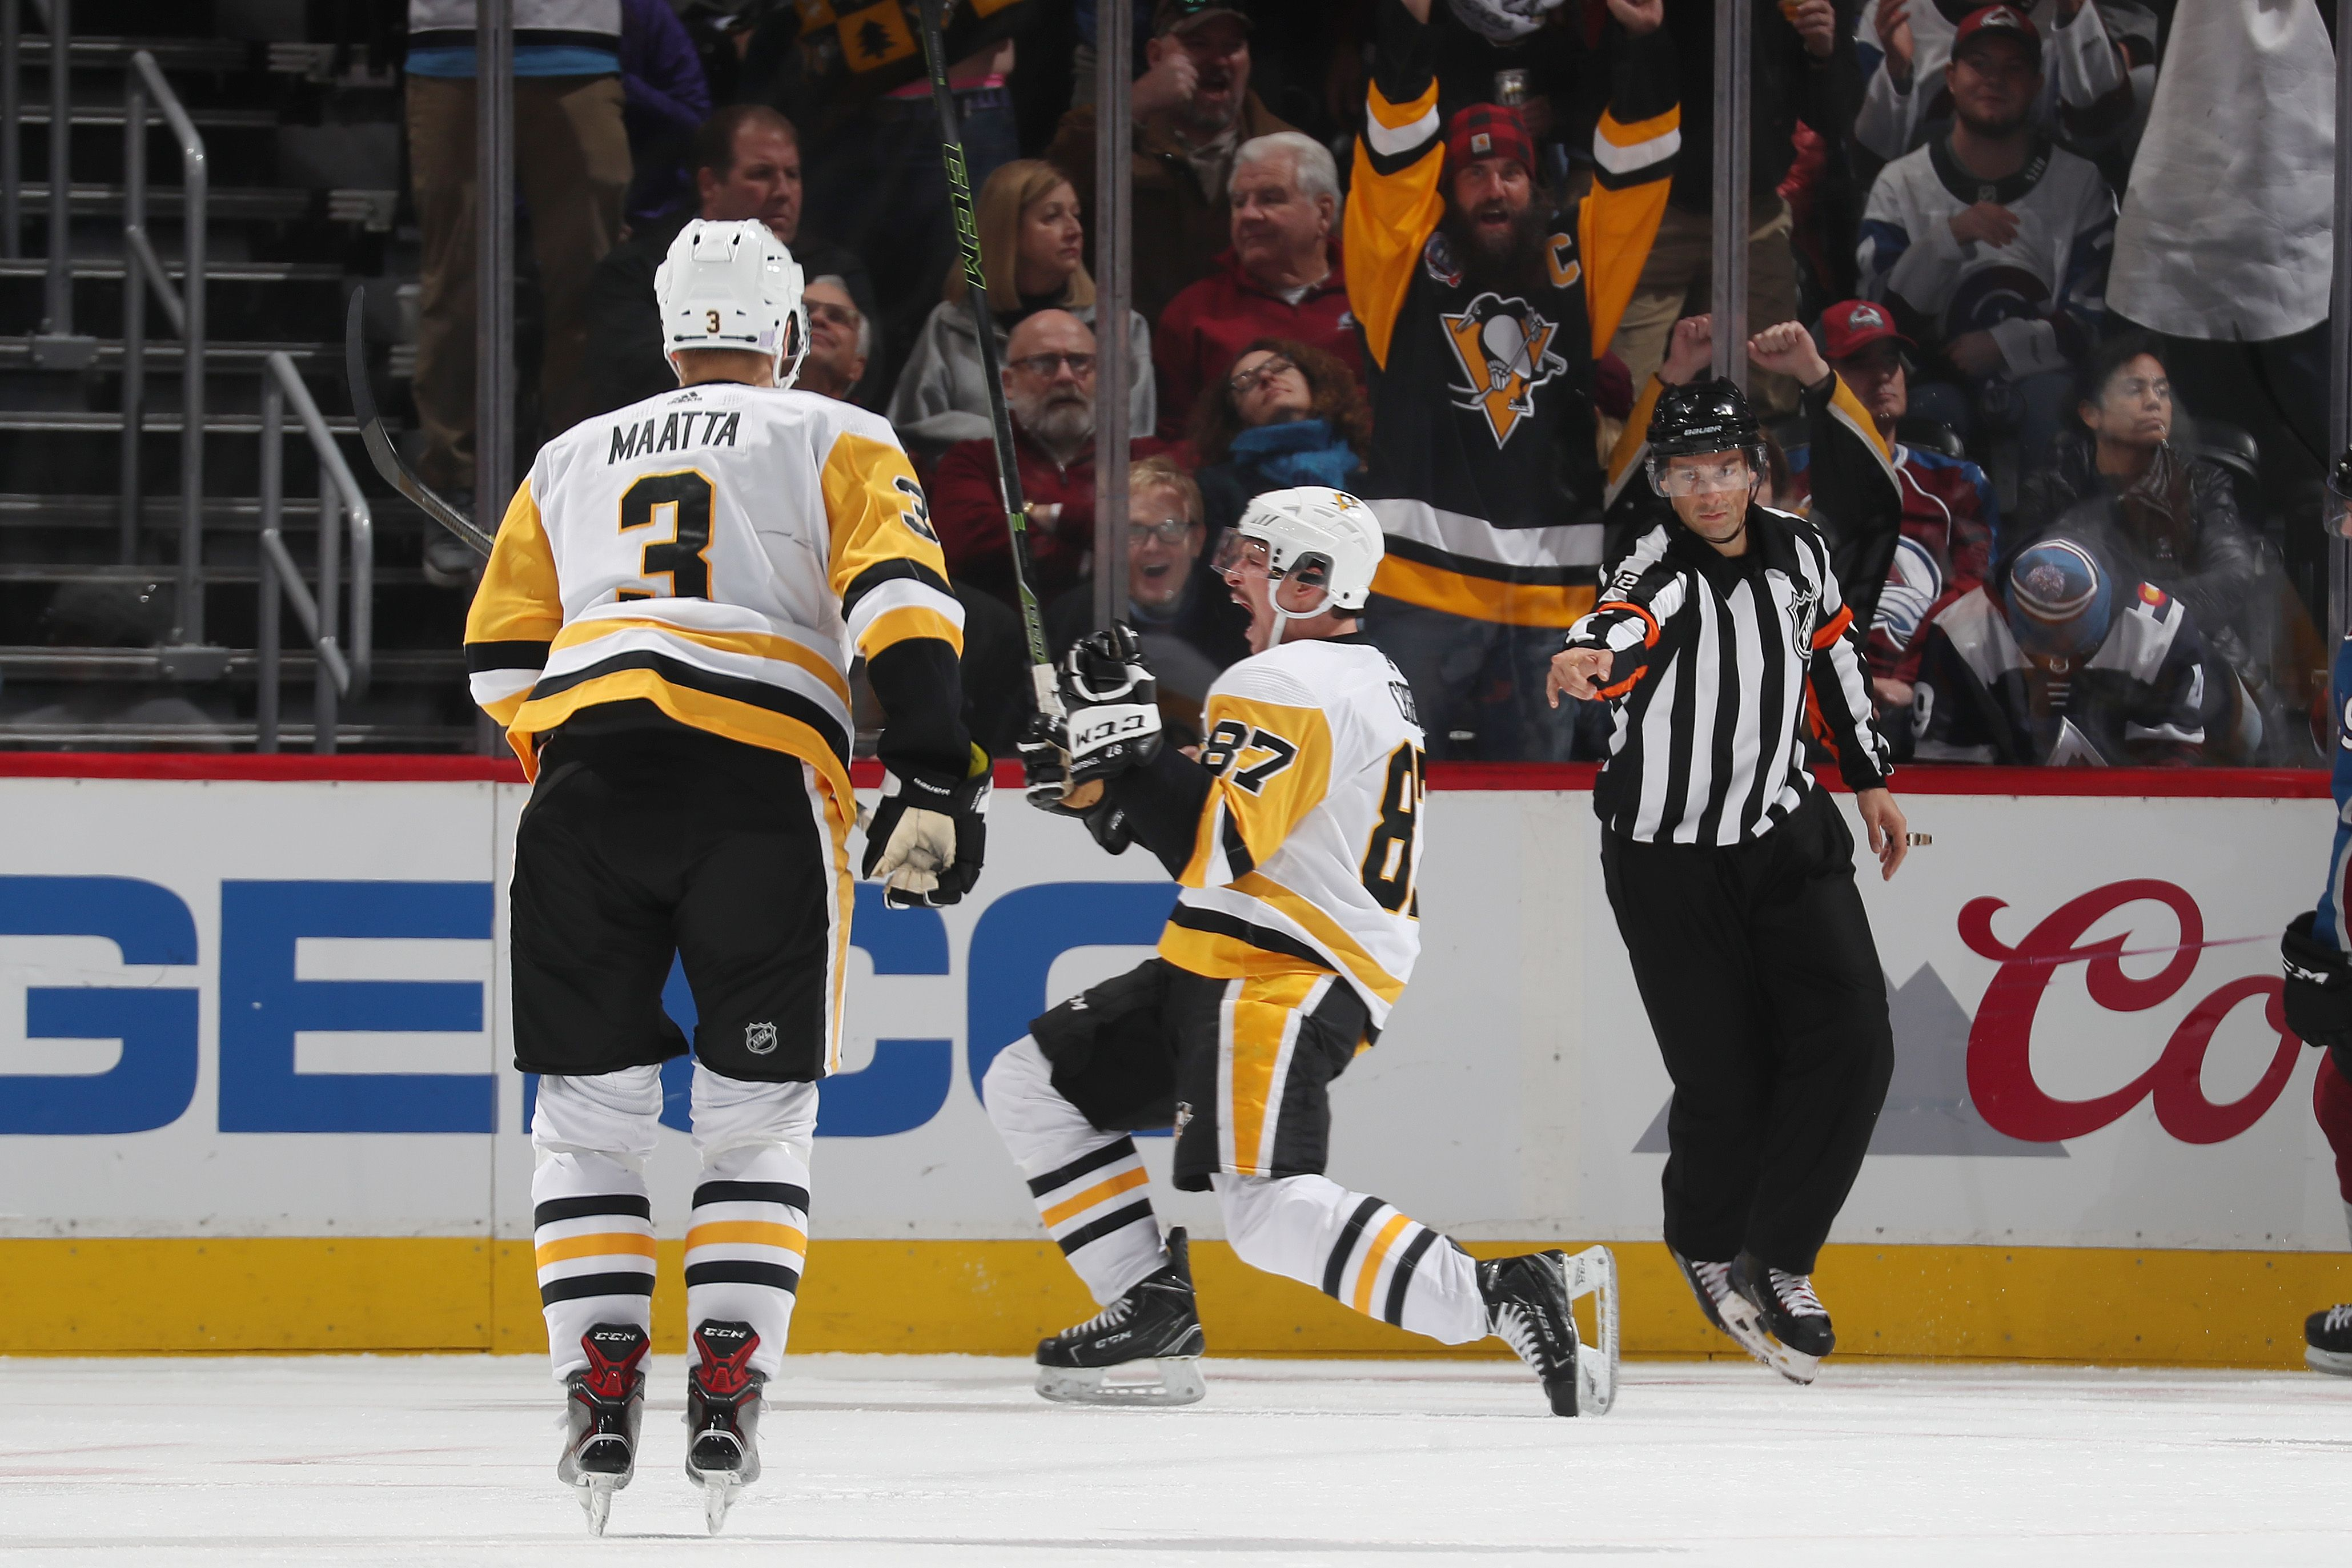 November 28 2018 At Colorado Sidney Crosby Recorded The 11th Hat Trick Of His Career But The Pens Were Pittsburgh Sports Pittsburgh Penguins Favorite Team